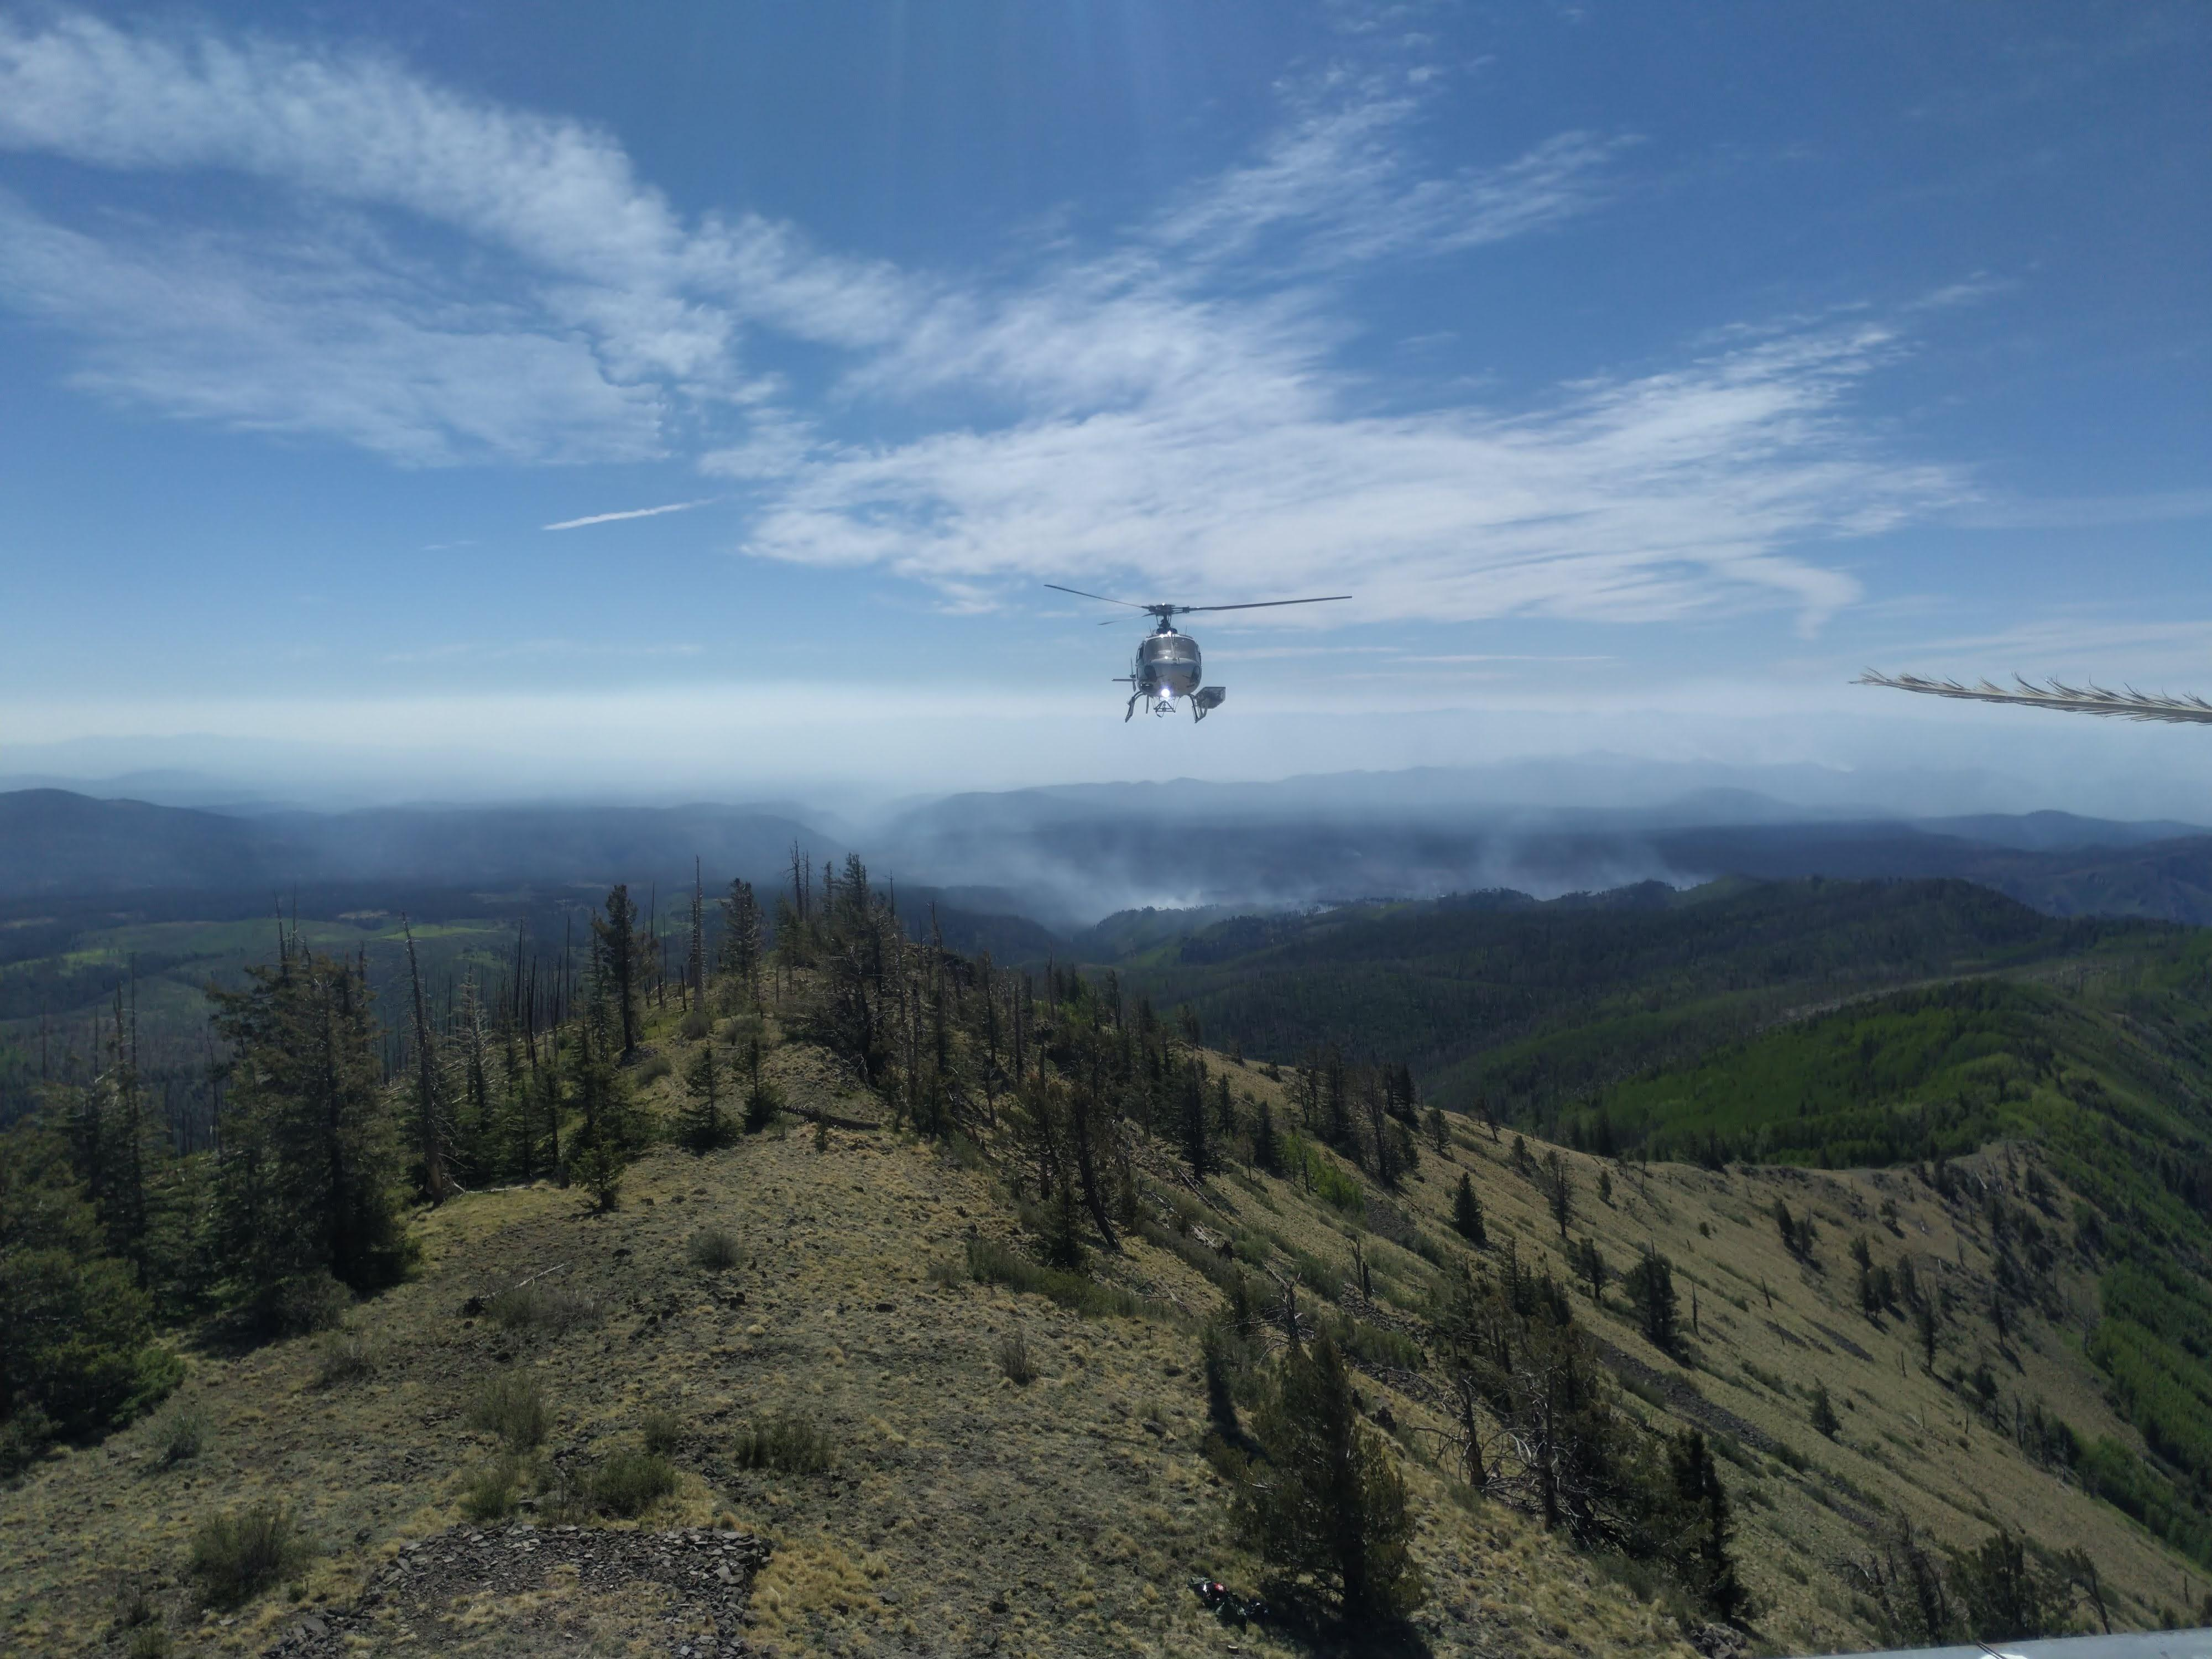 Looking east toward Johnson Fire with Helicopter in Foreground